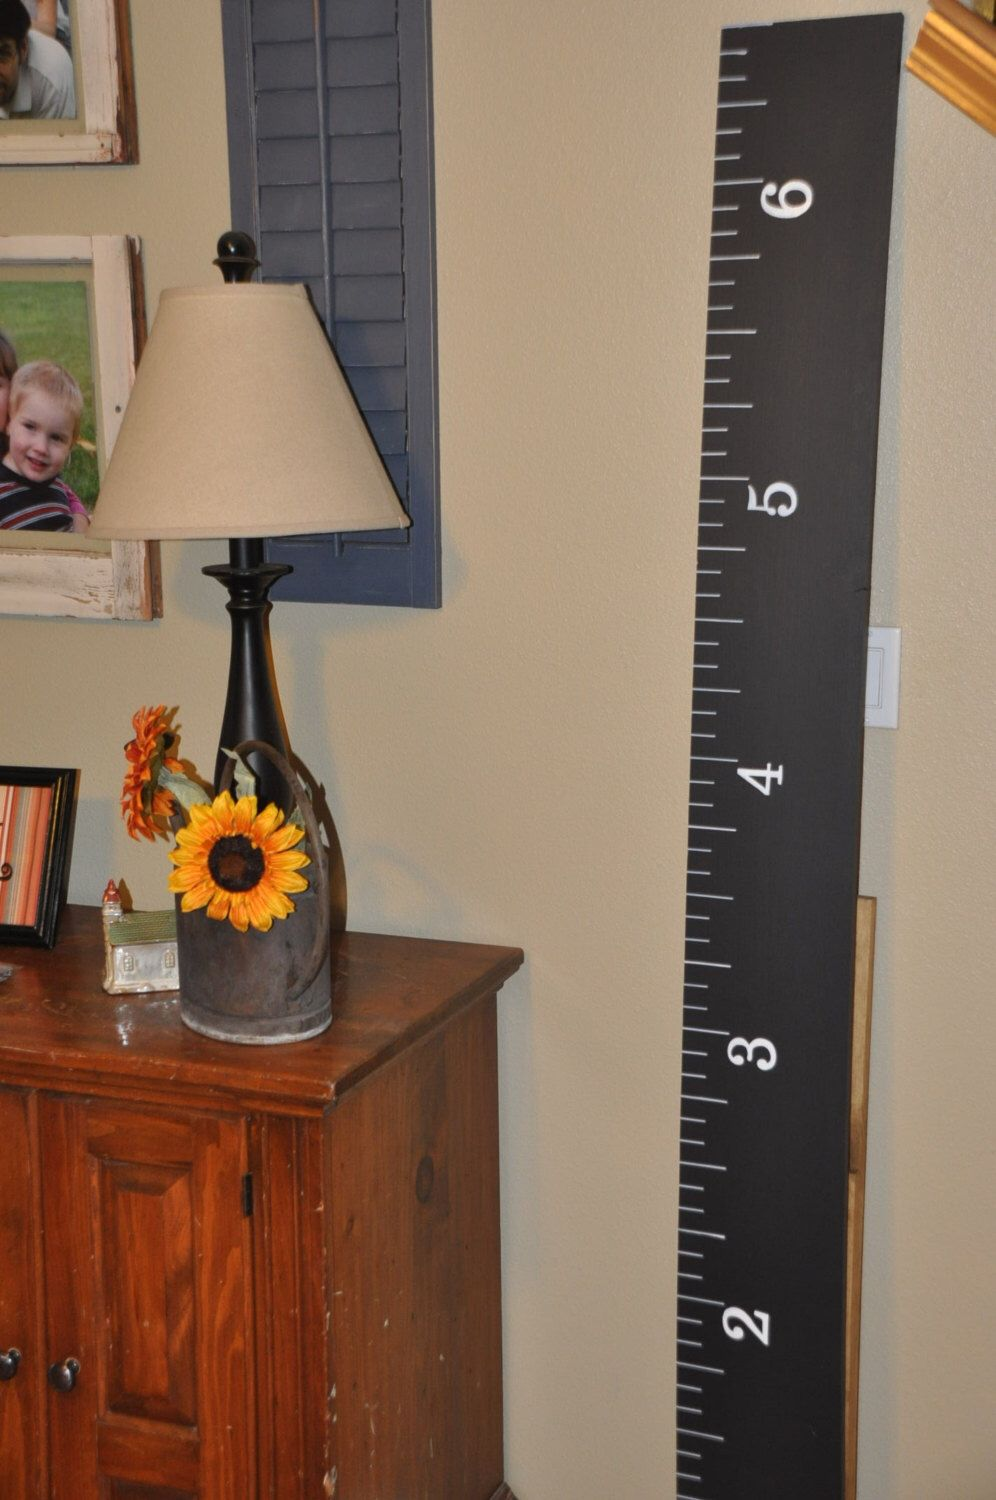 SALE 4000 Sold! Life-size handmade  Chalkboard growth chart rulers for measuring kids' height by KeepsakeRulers on Etsy https://www.etsy.com/listing/171186280/sale-4000-sold-life-size-handmade